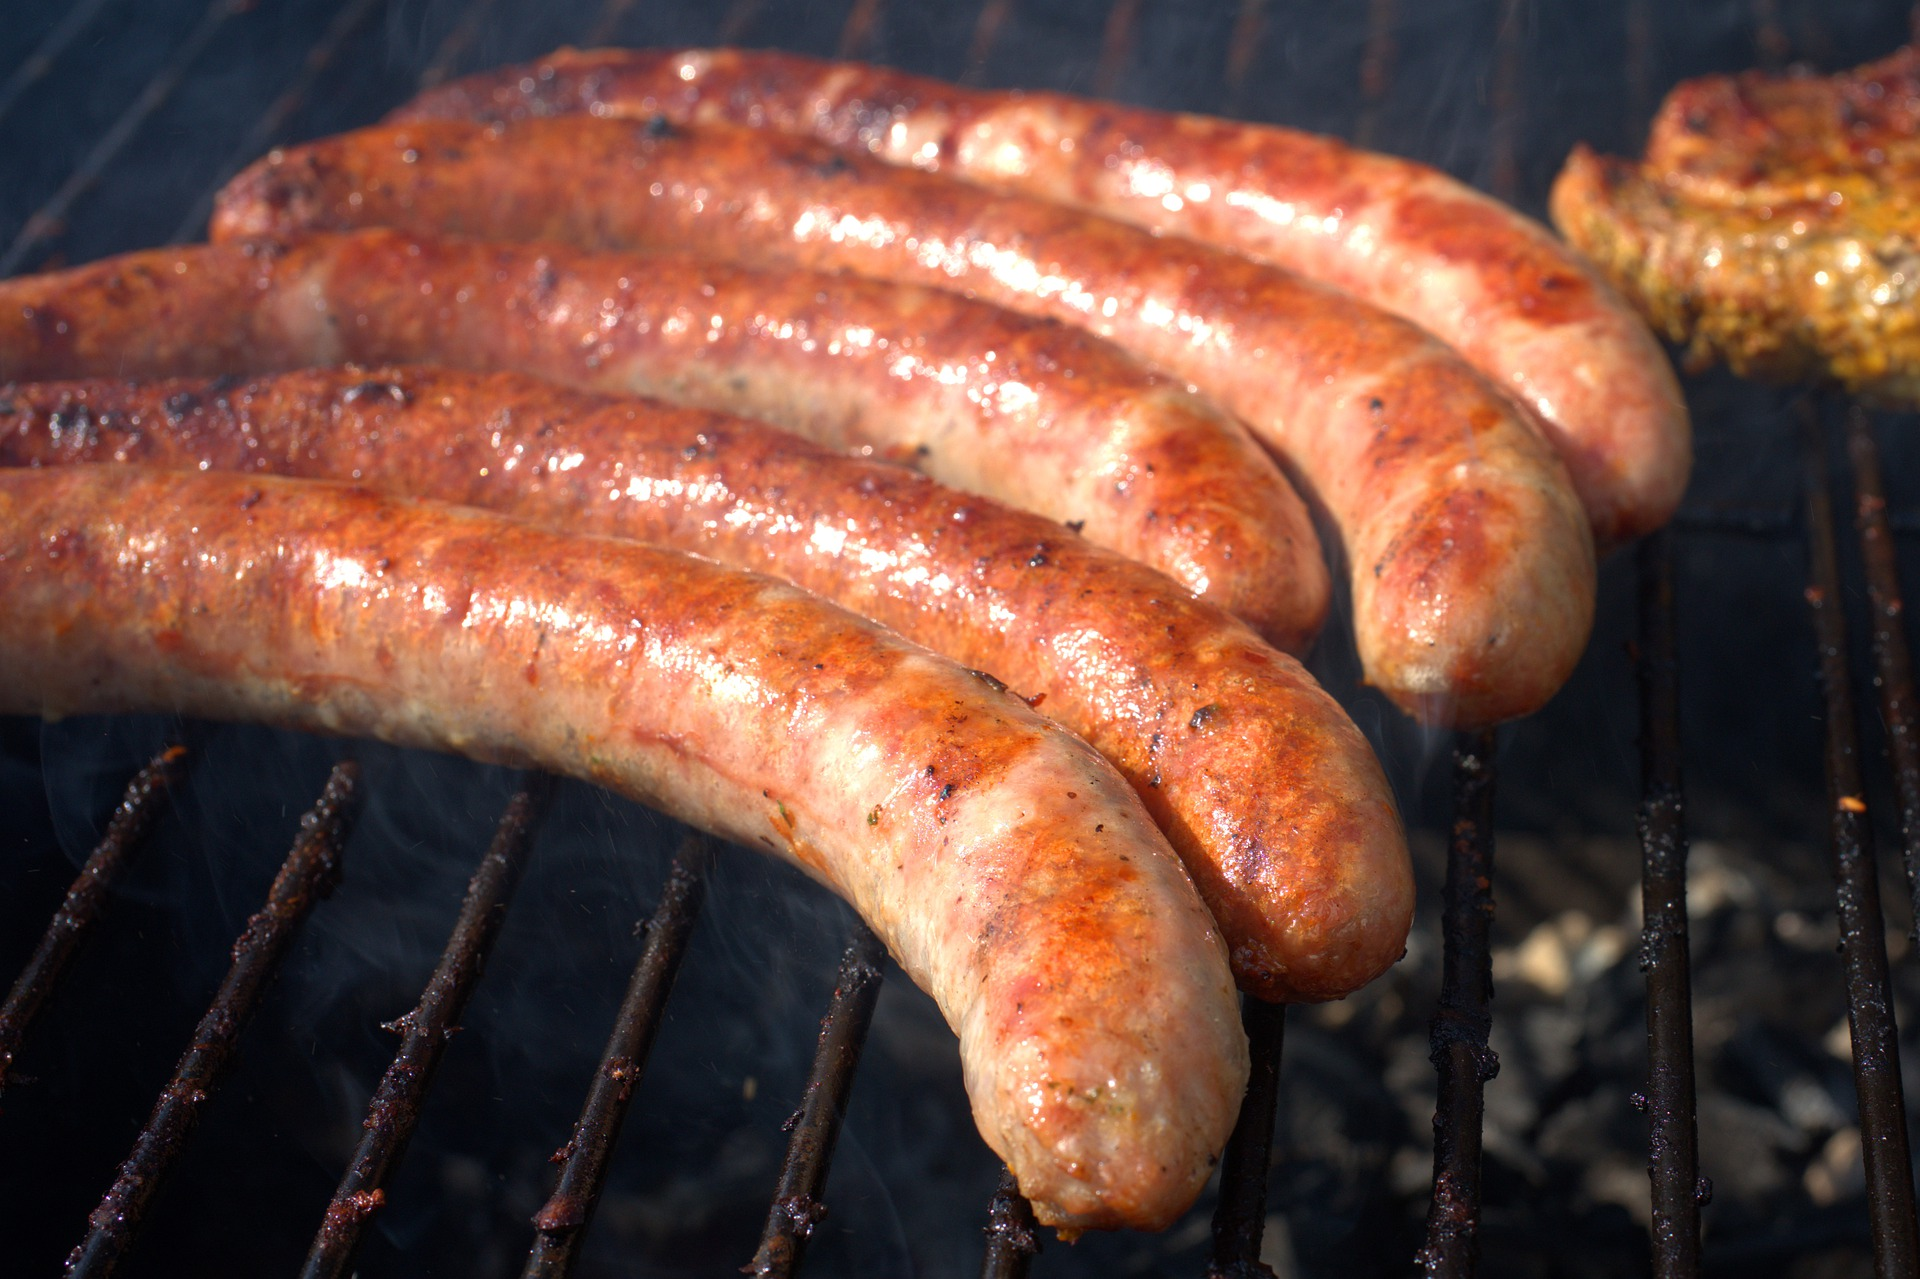 grill-sausage-4249707_1920-1